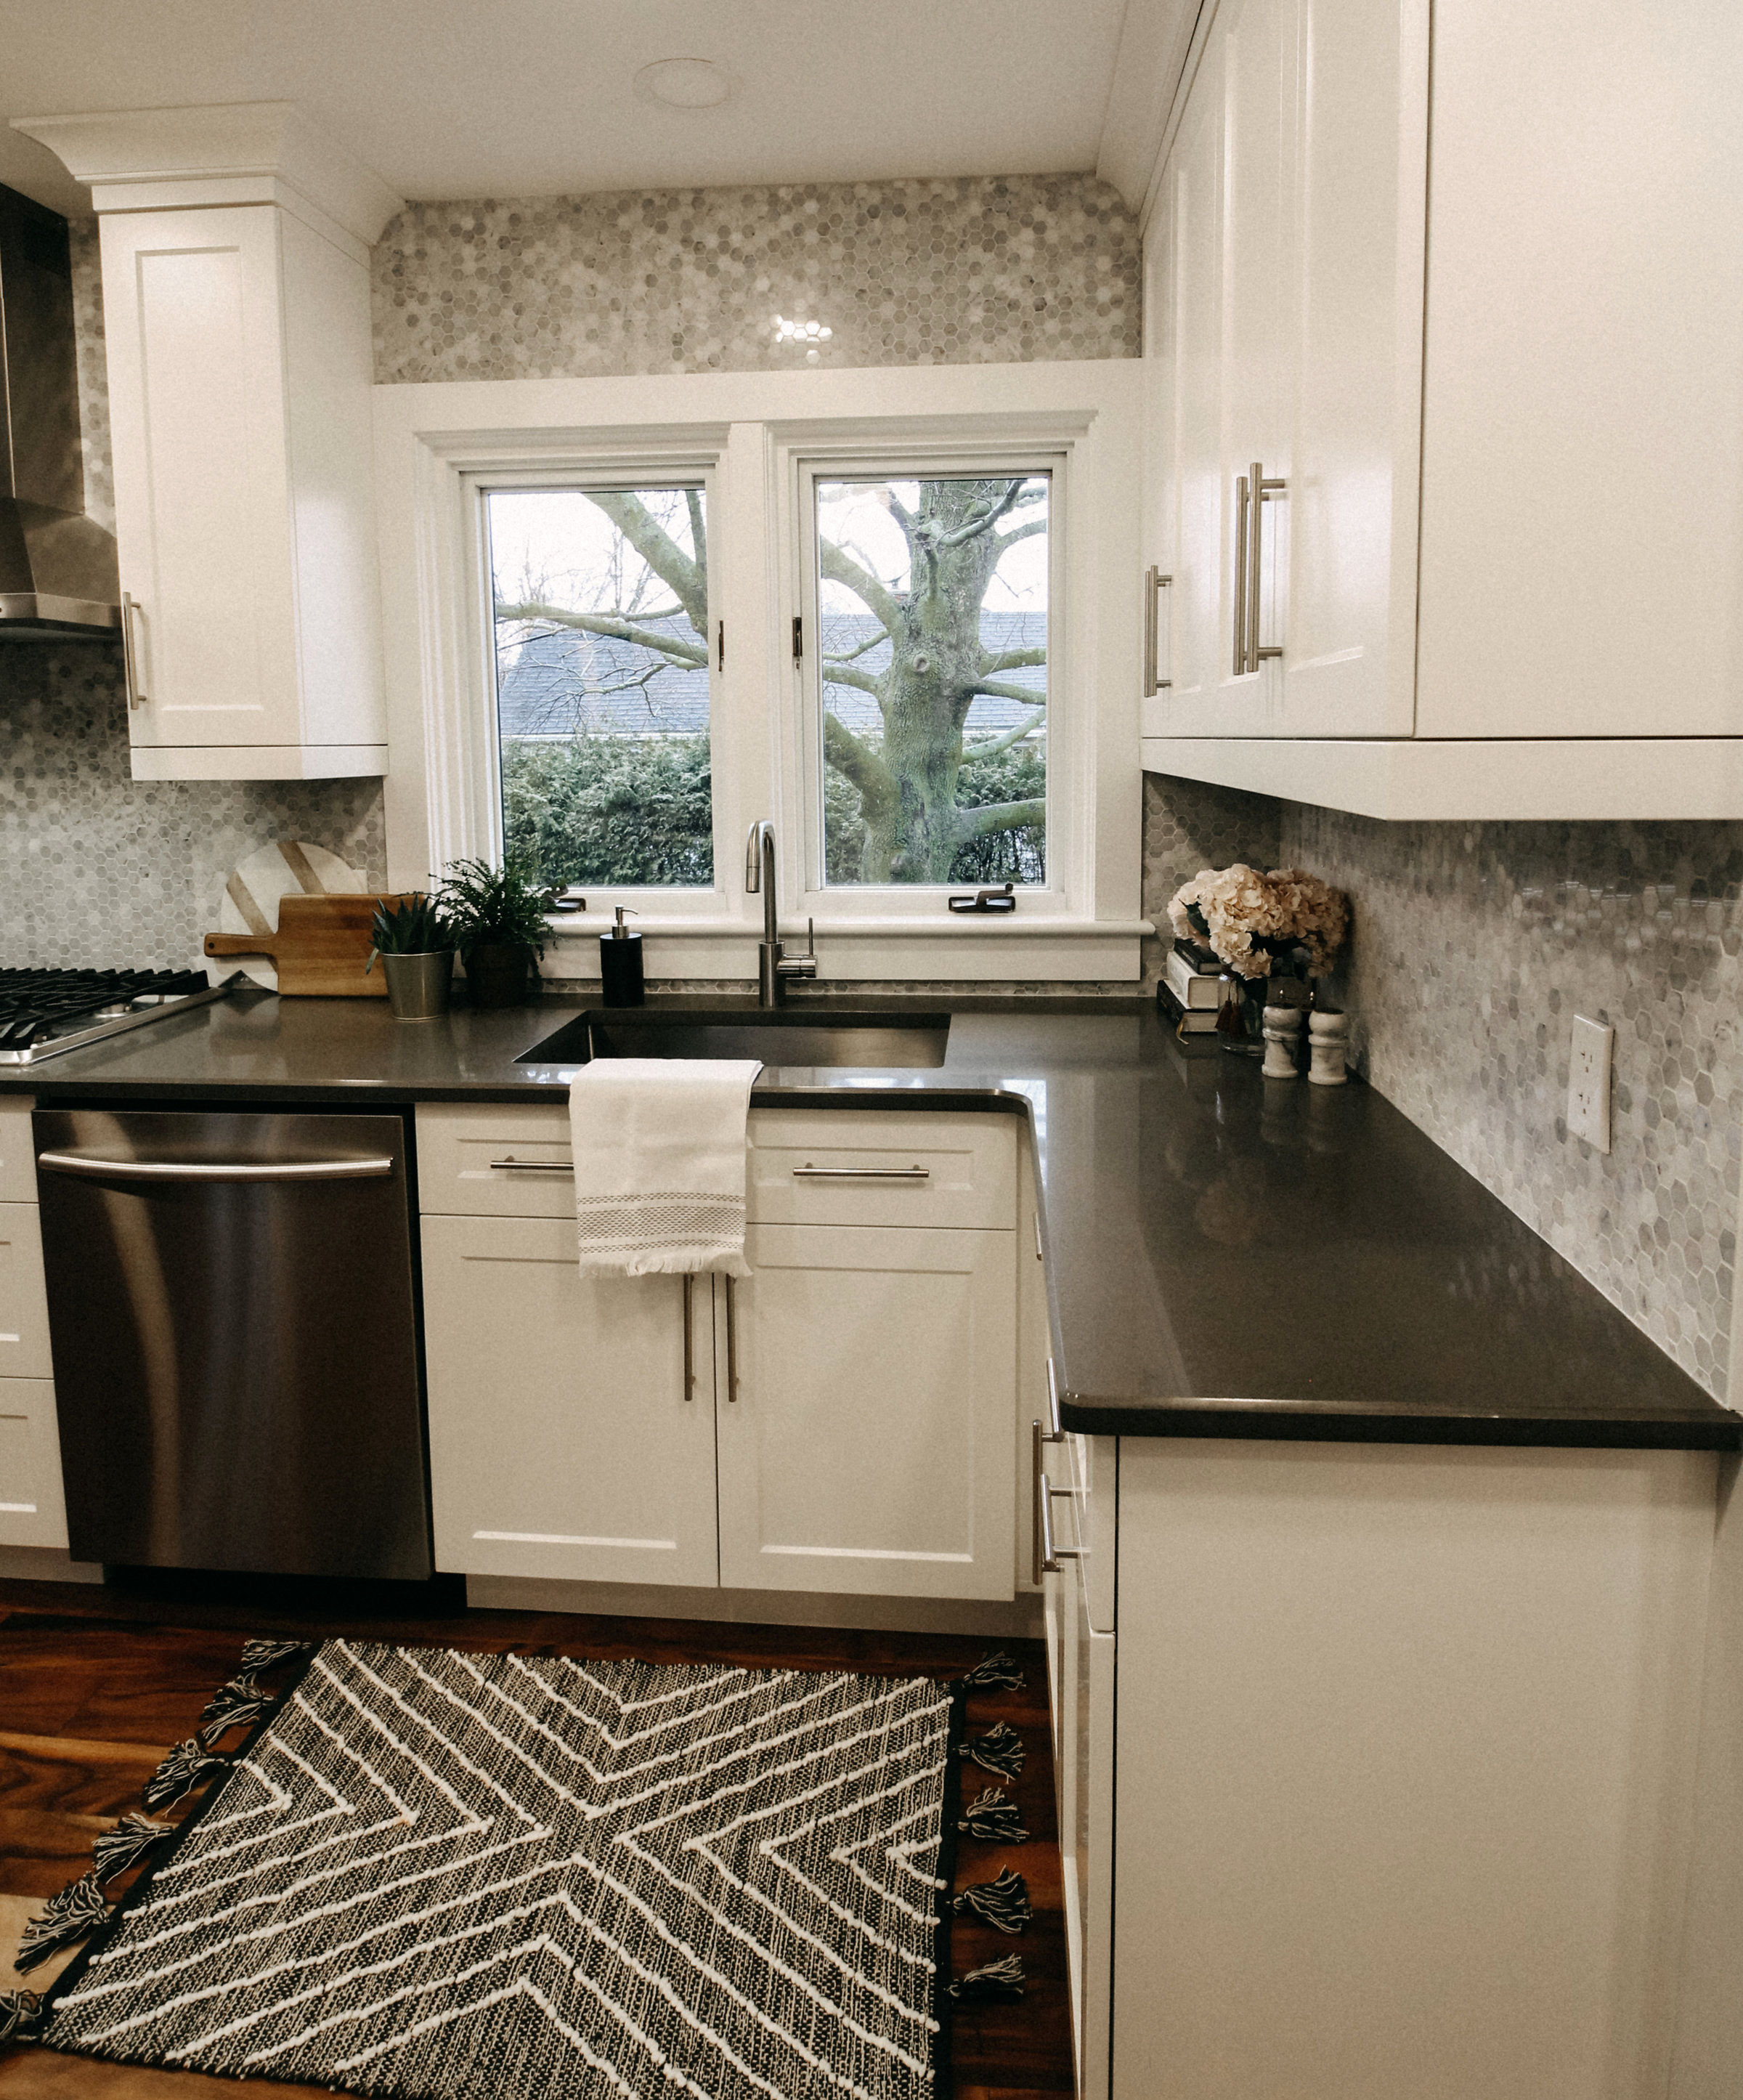 Palmer Kitchen Small Side Cabinets.jpg